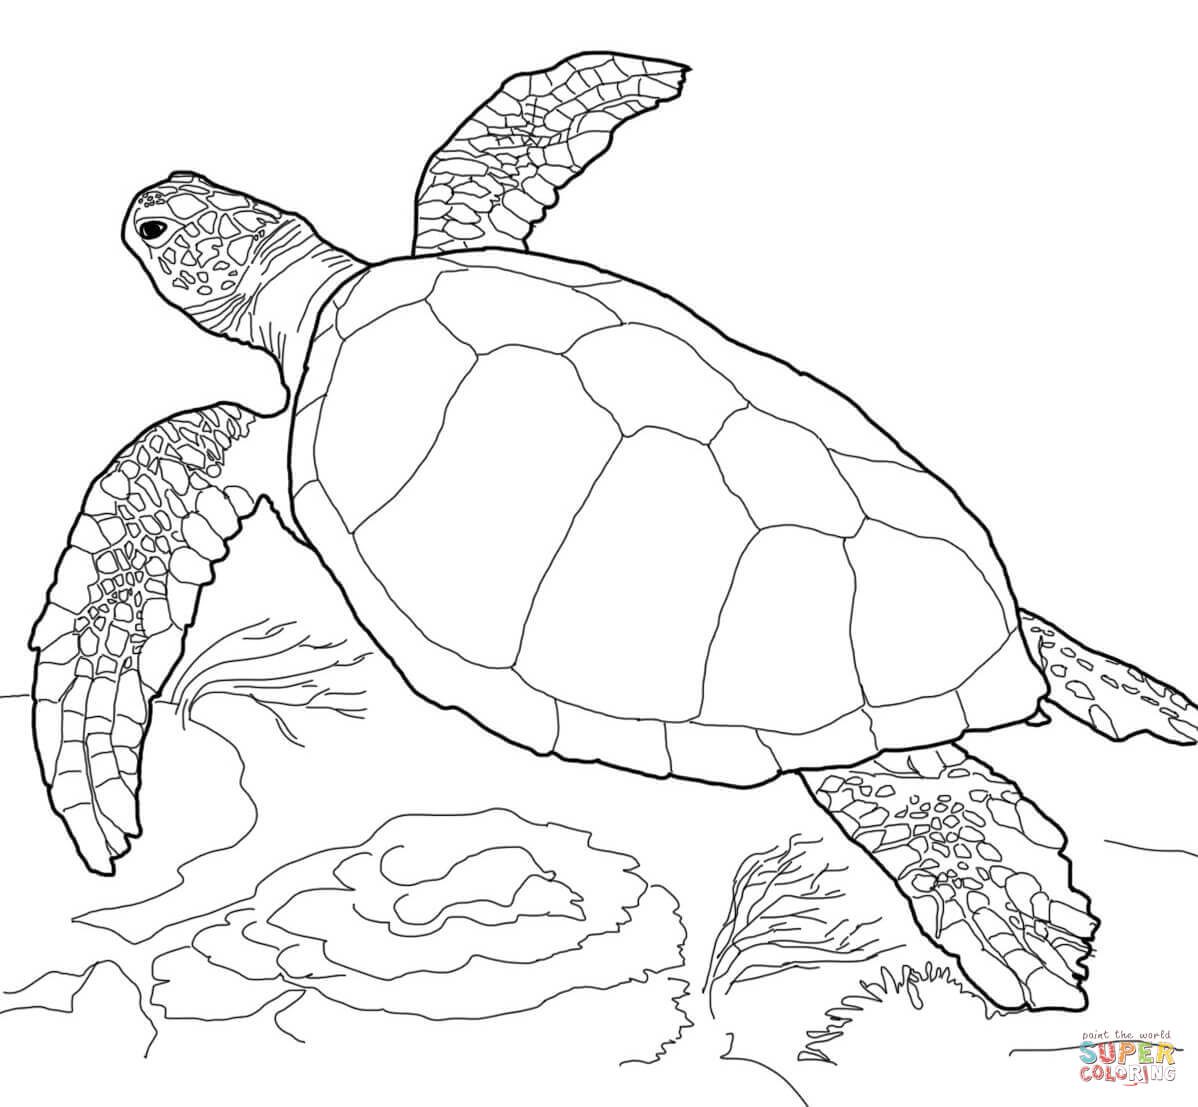 1198x1107 Green Sea Turtle Coloring Page Free Printable Coloring Pages